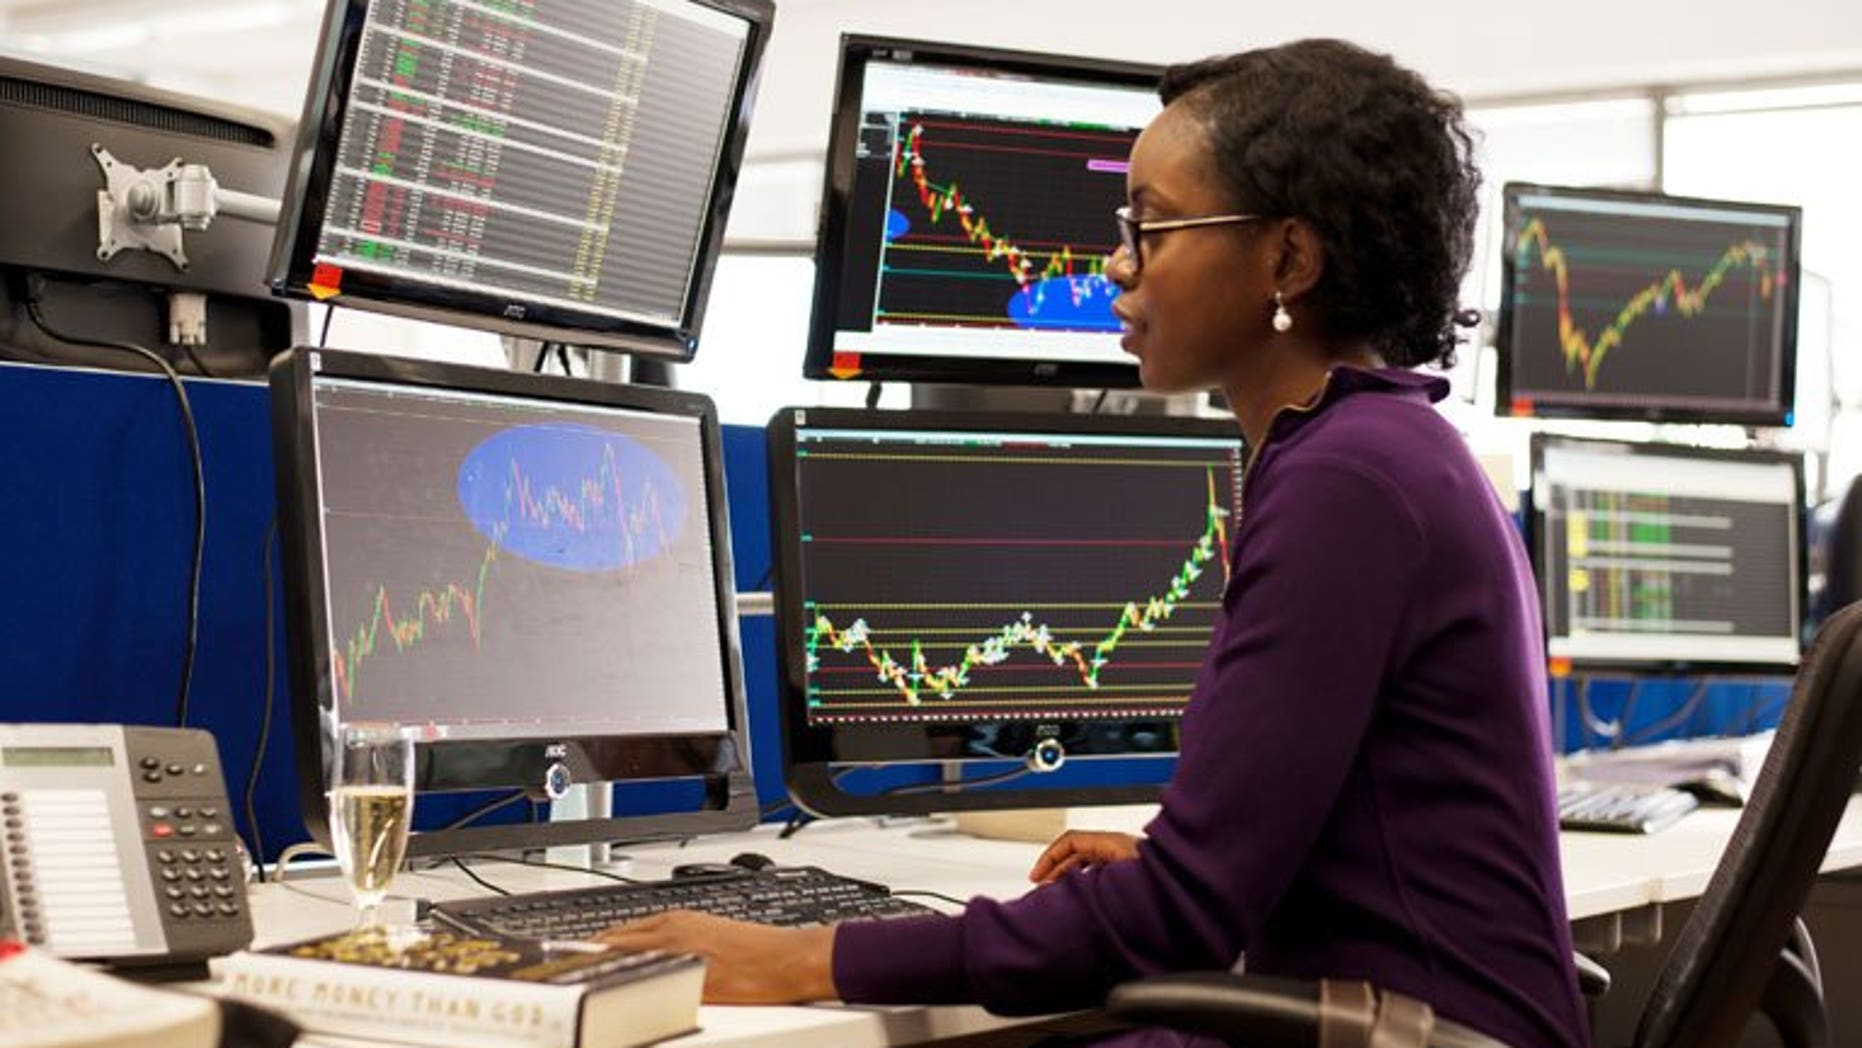 A woman takes part in a trader training programme in London. London shares opened lower on Wednesday on a technical adjustment as more shares went ex-dividend.